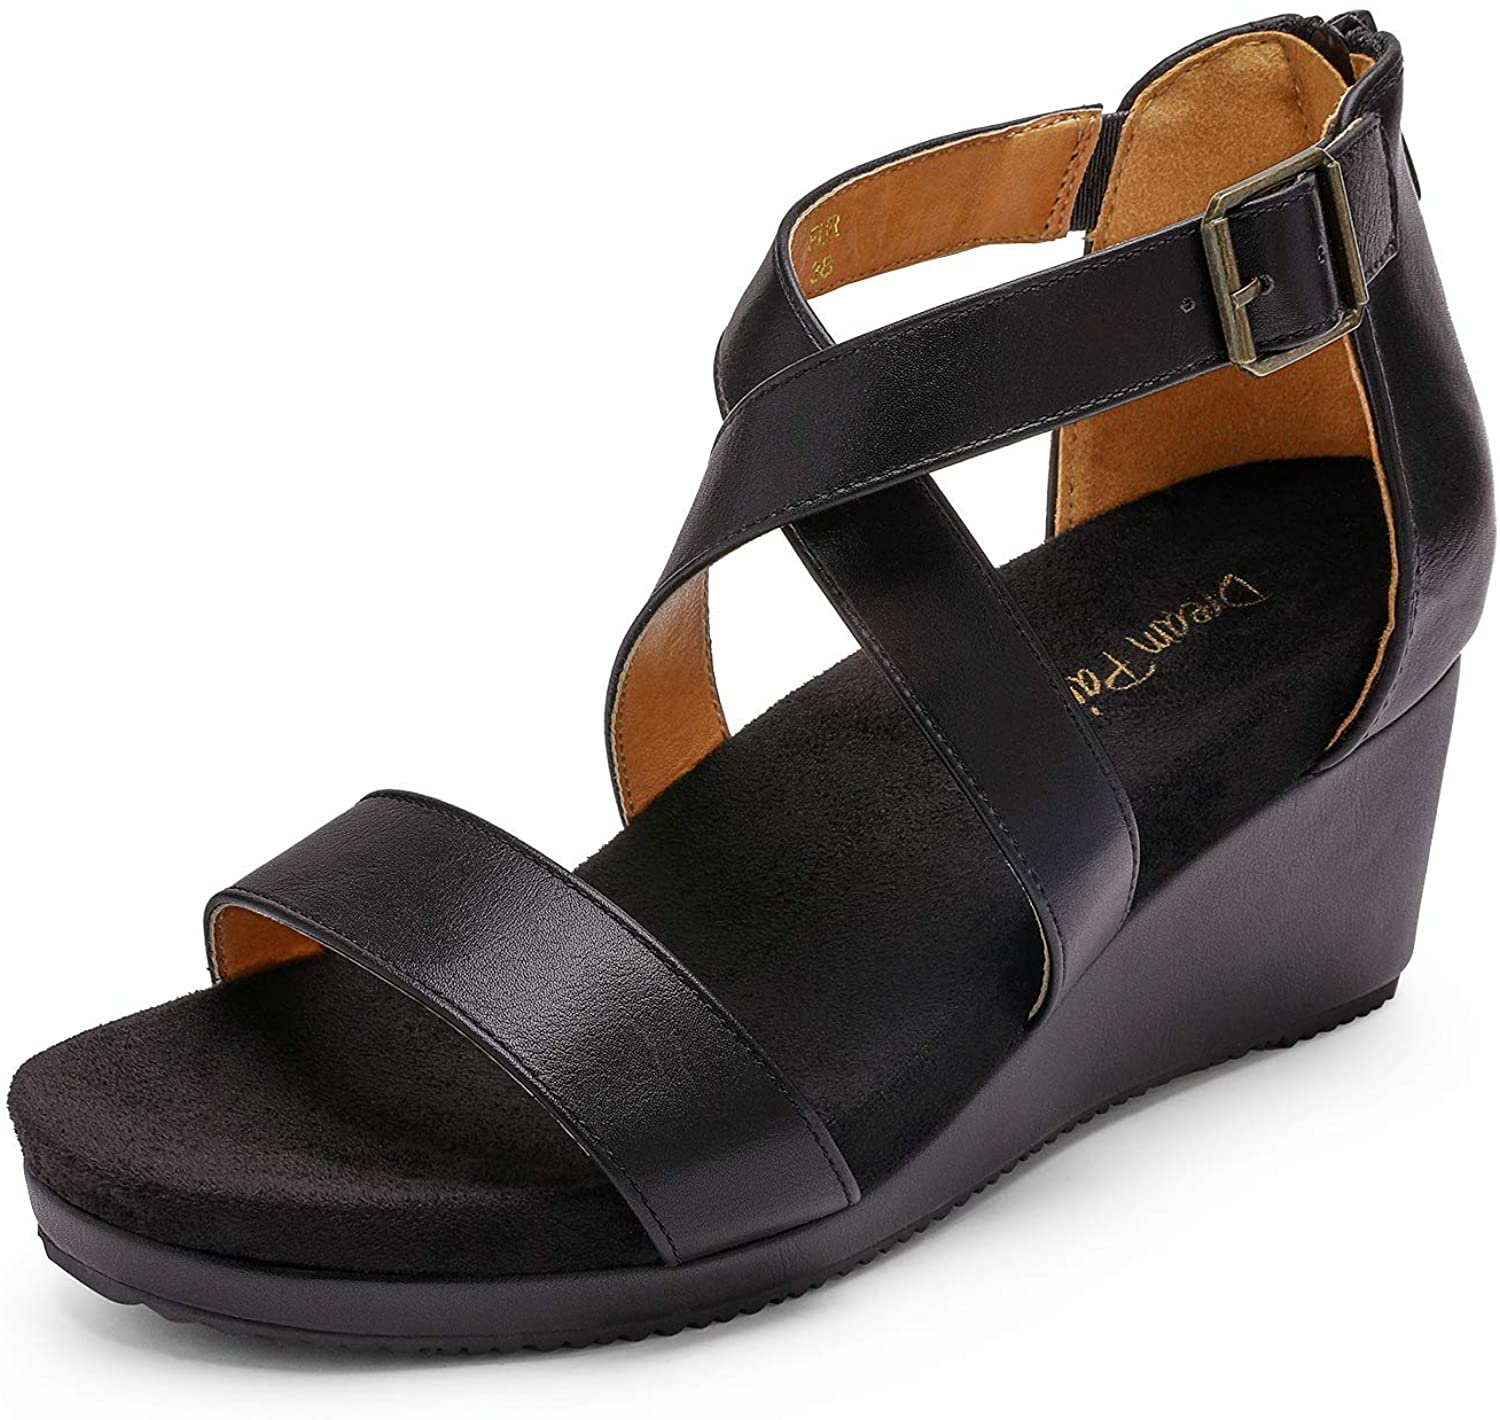 DREAM PAIRS Women's Open Toe Summer Ankle Strap Cheap mail order sales Max 57% OFF Buckle Platform